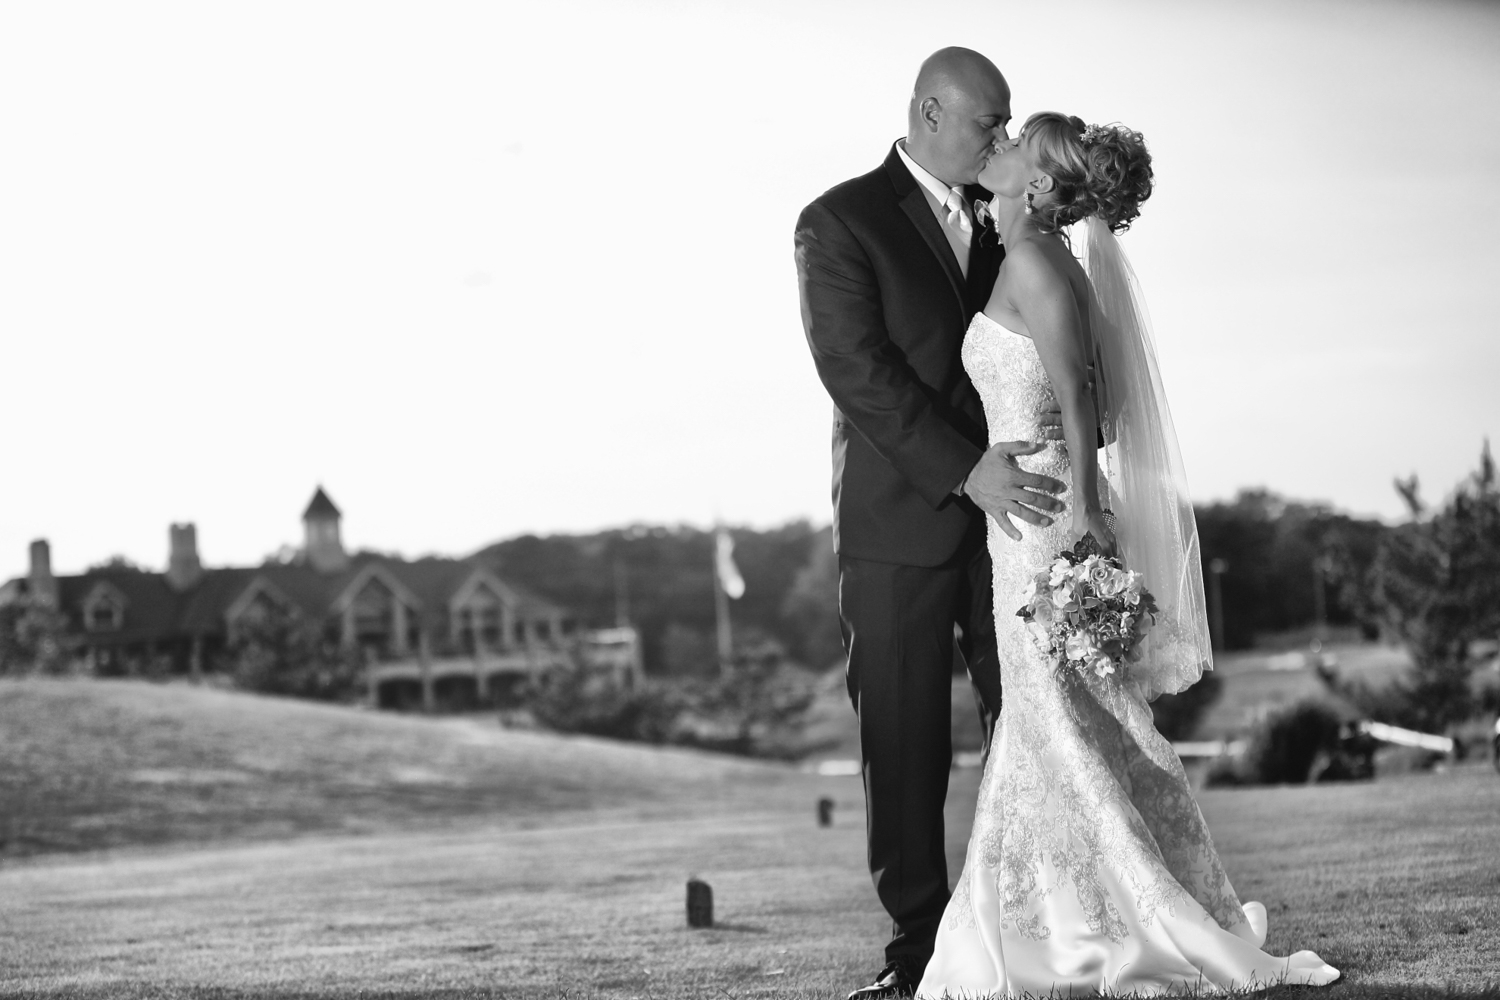 Wedding+Photos+Scotland+Run+Golf+Course+Williamstown+NJ05.jpg